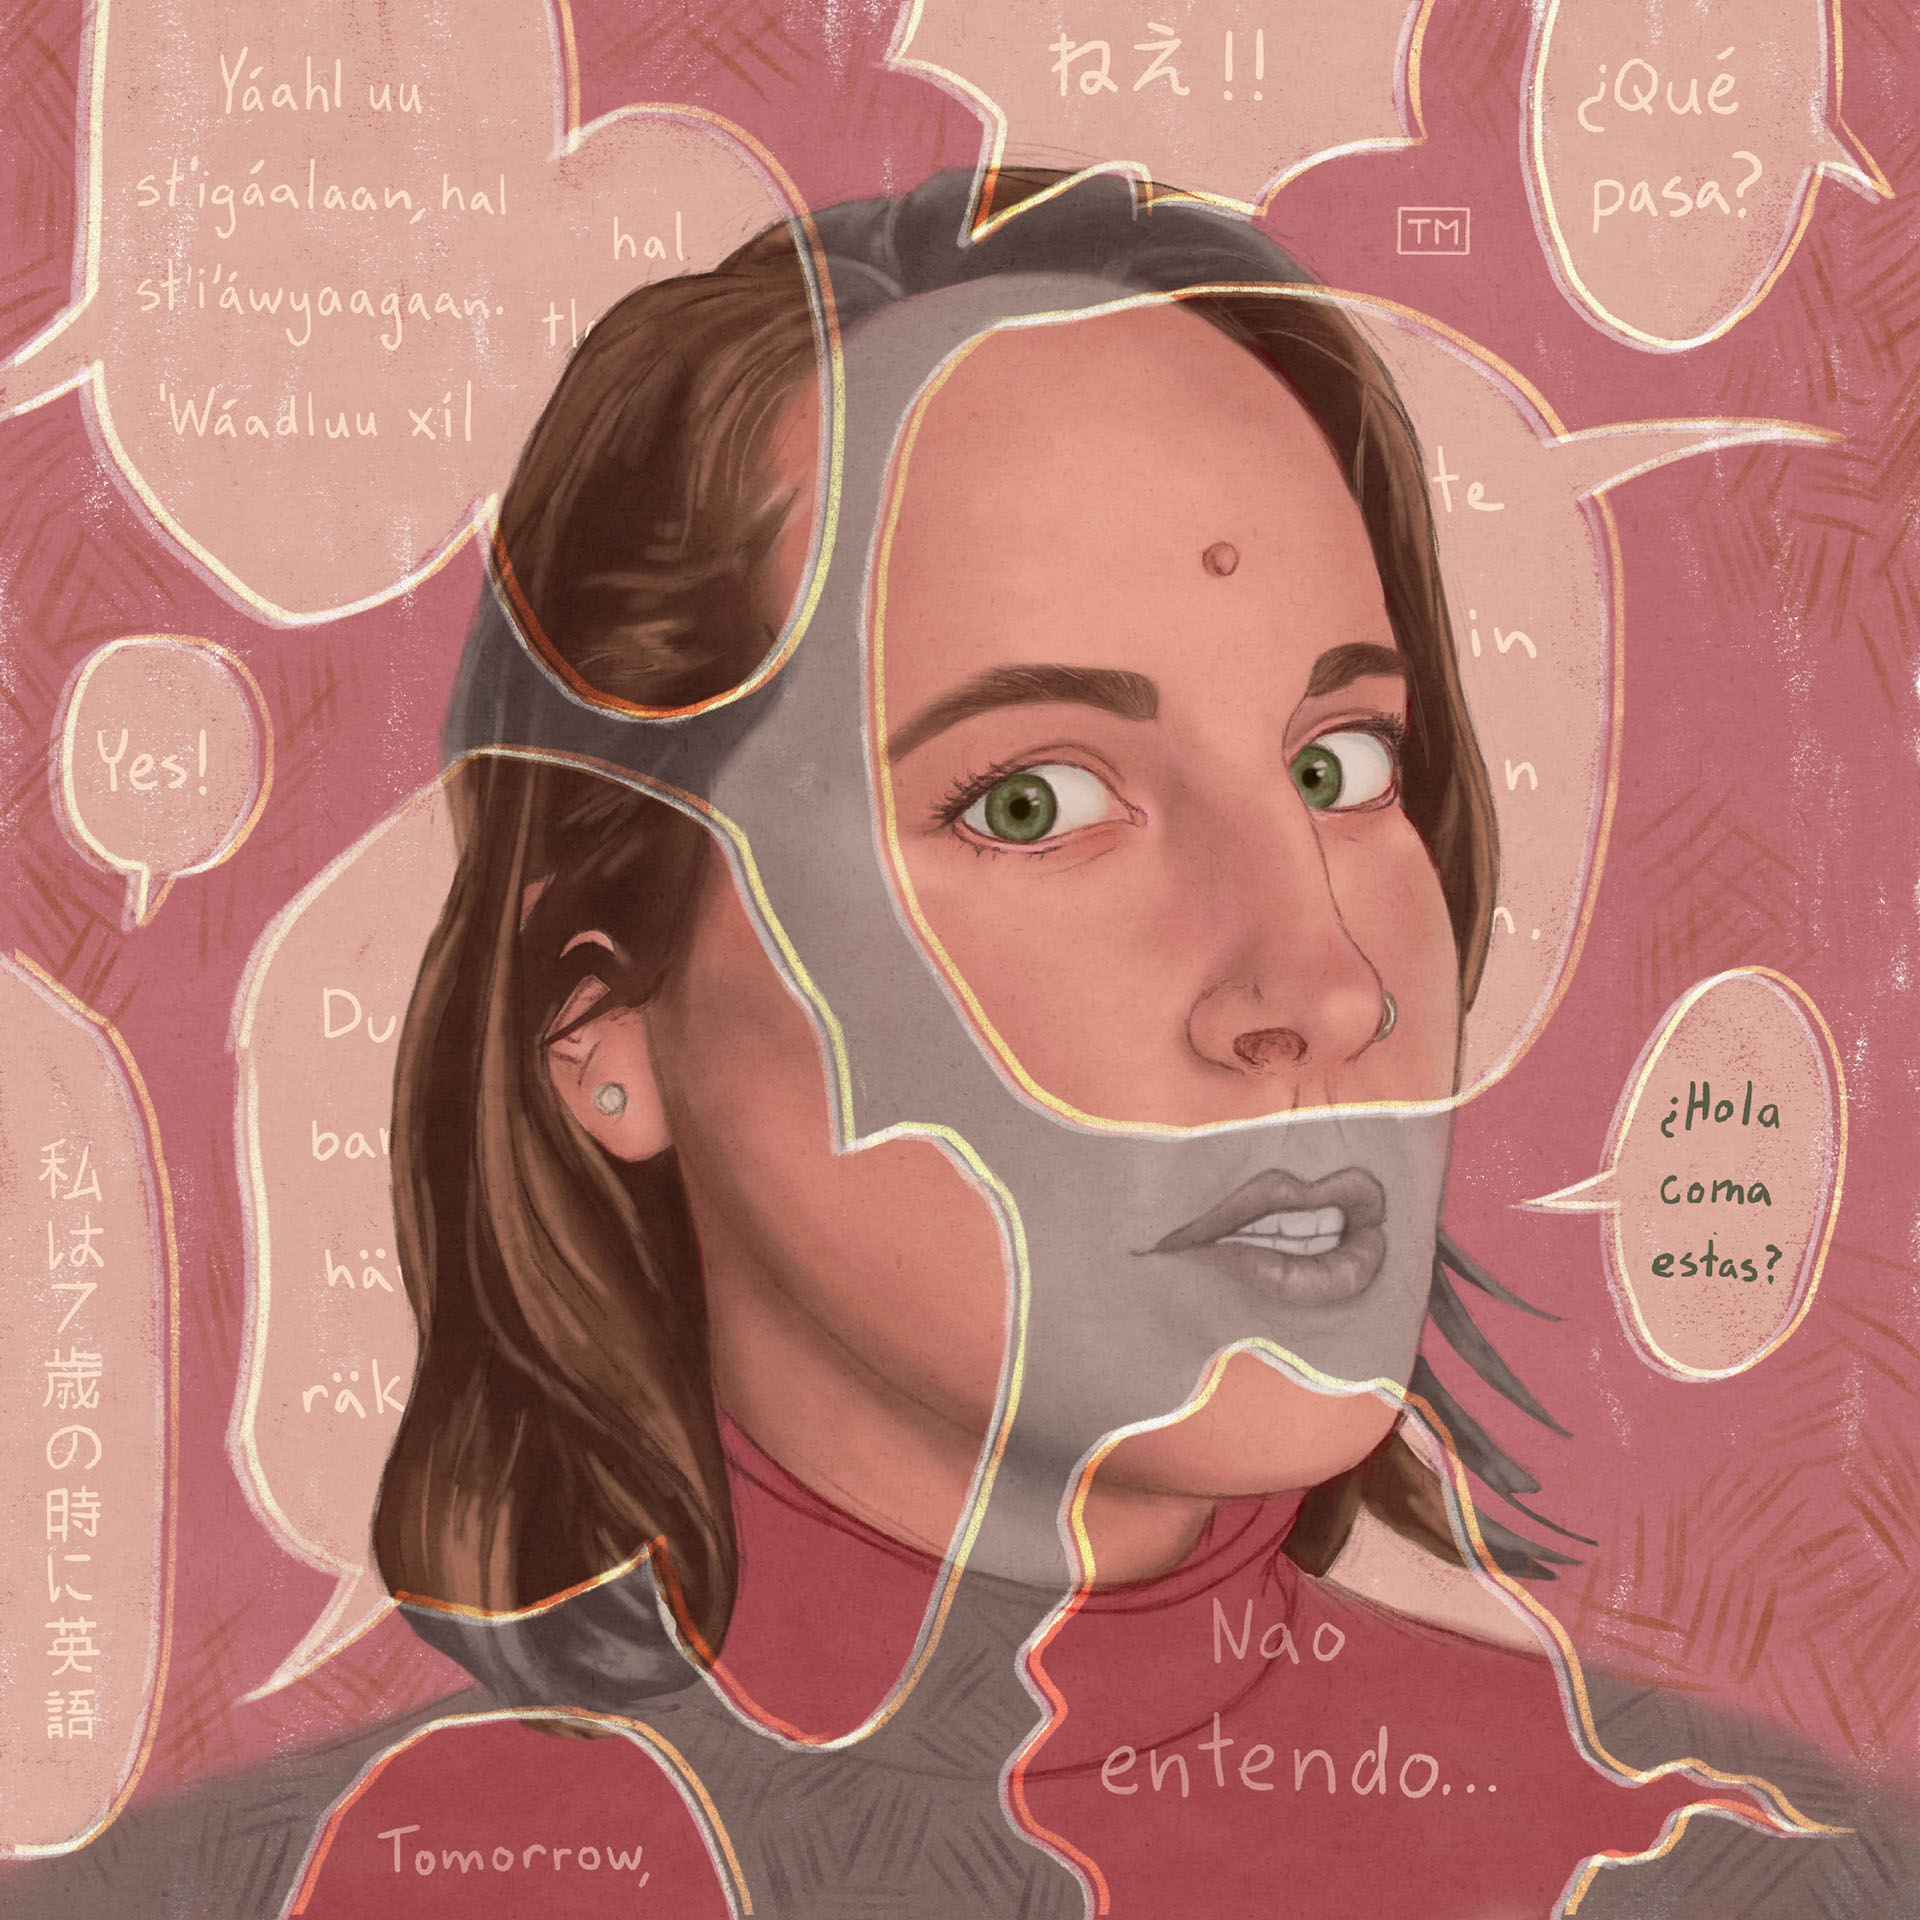 [I.D.: Author Jade Vandergrift is shown with speech bubbles floating around her in a pink hue. The speech bubbles portray a number of different languages including Spanish, Japanese, Portuguese, and the Haida language, Xaad Kil. Image illustrated by Teigan Mudle.]